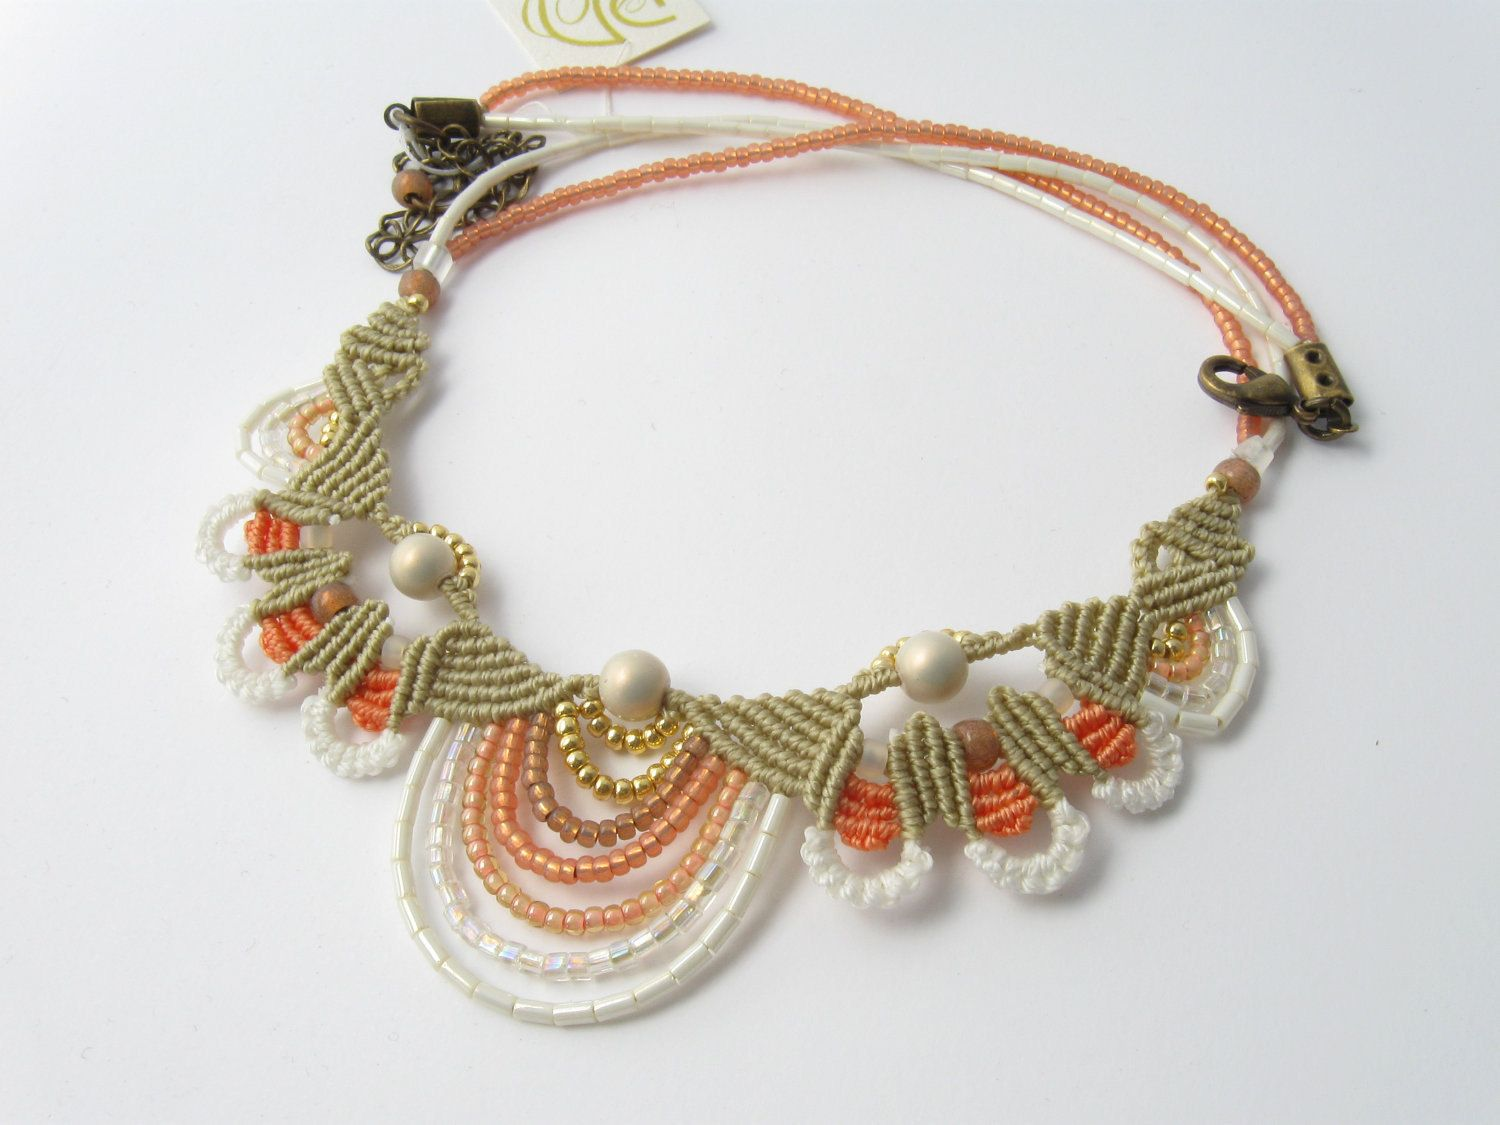 Indian Macrame beaded necklace beige orange cream ivory and white. $80.00, via Etsy.